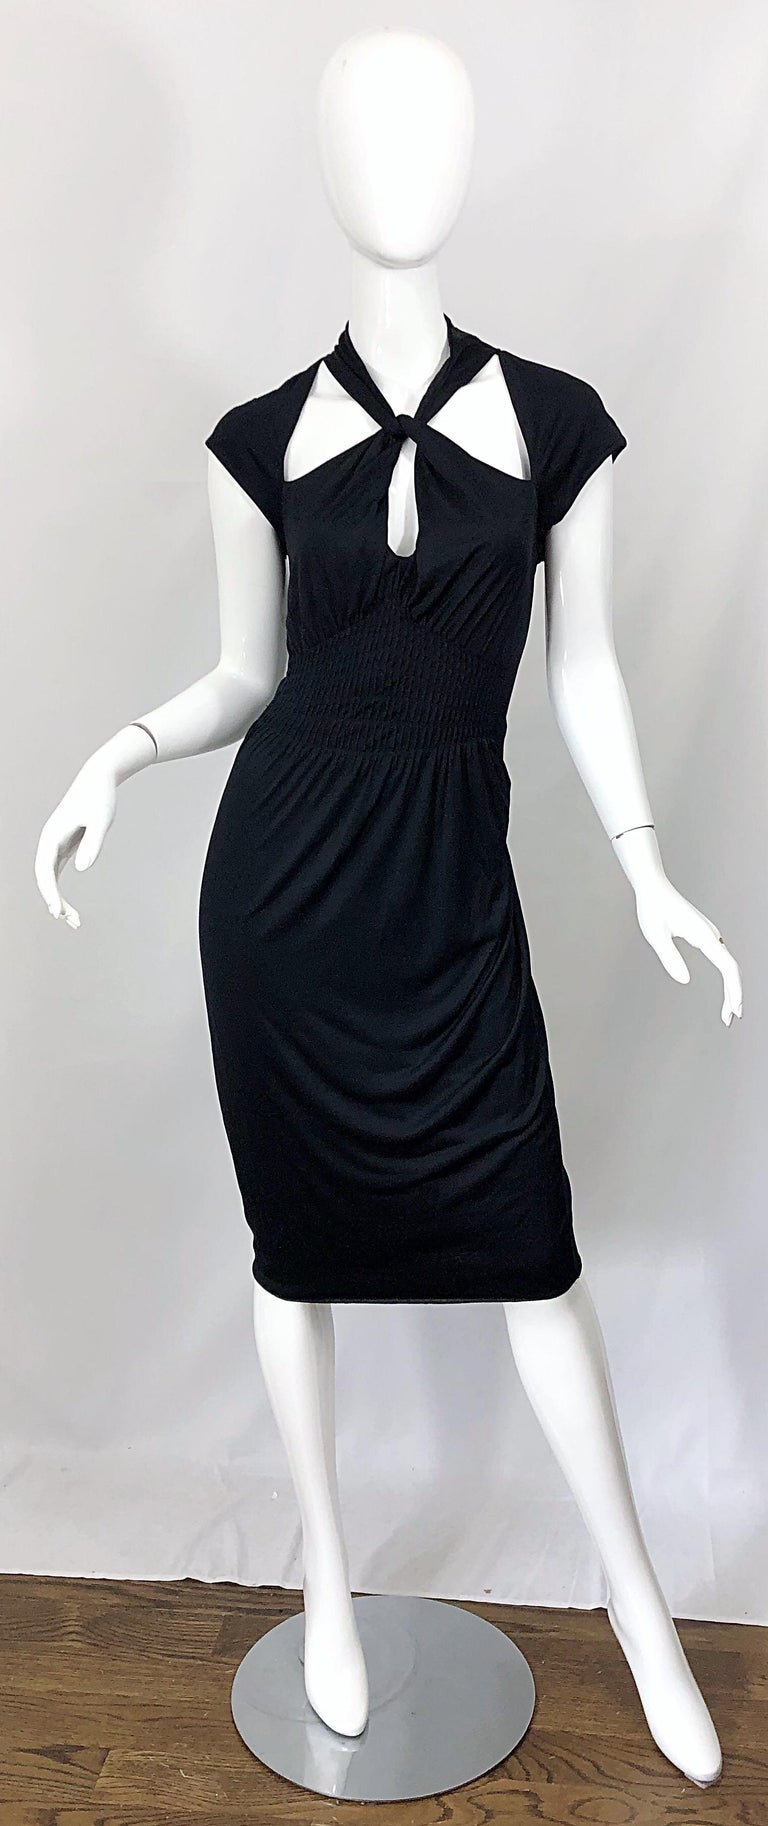 Sexy yet sophisticated GUCCI by TOM FORD Fall 2003 Runway dress! The long sleeve version was seen on Fergie and Naomi Watts for Red Carpet events. Cut-out detail at bodice gives the illusion of wearing a cap sleeve shrug. Halter style neck with a